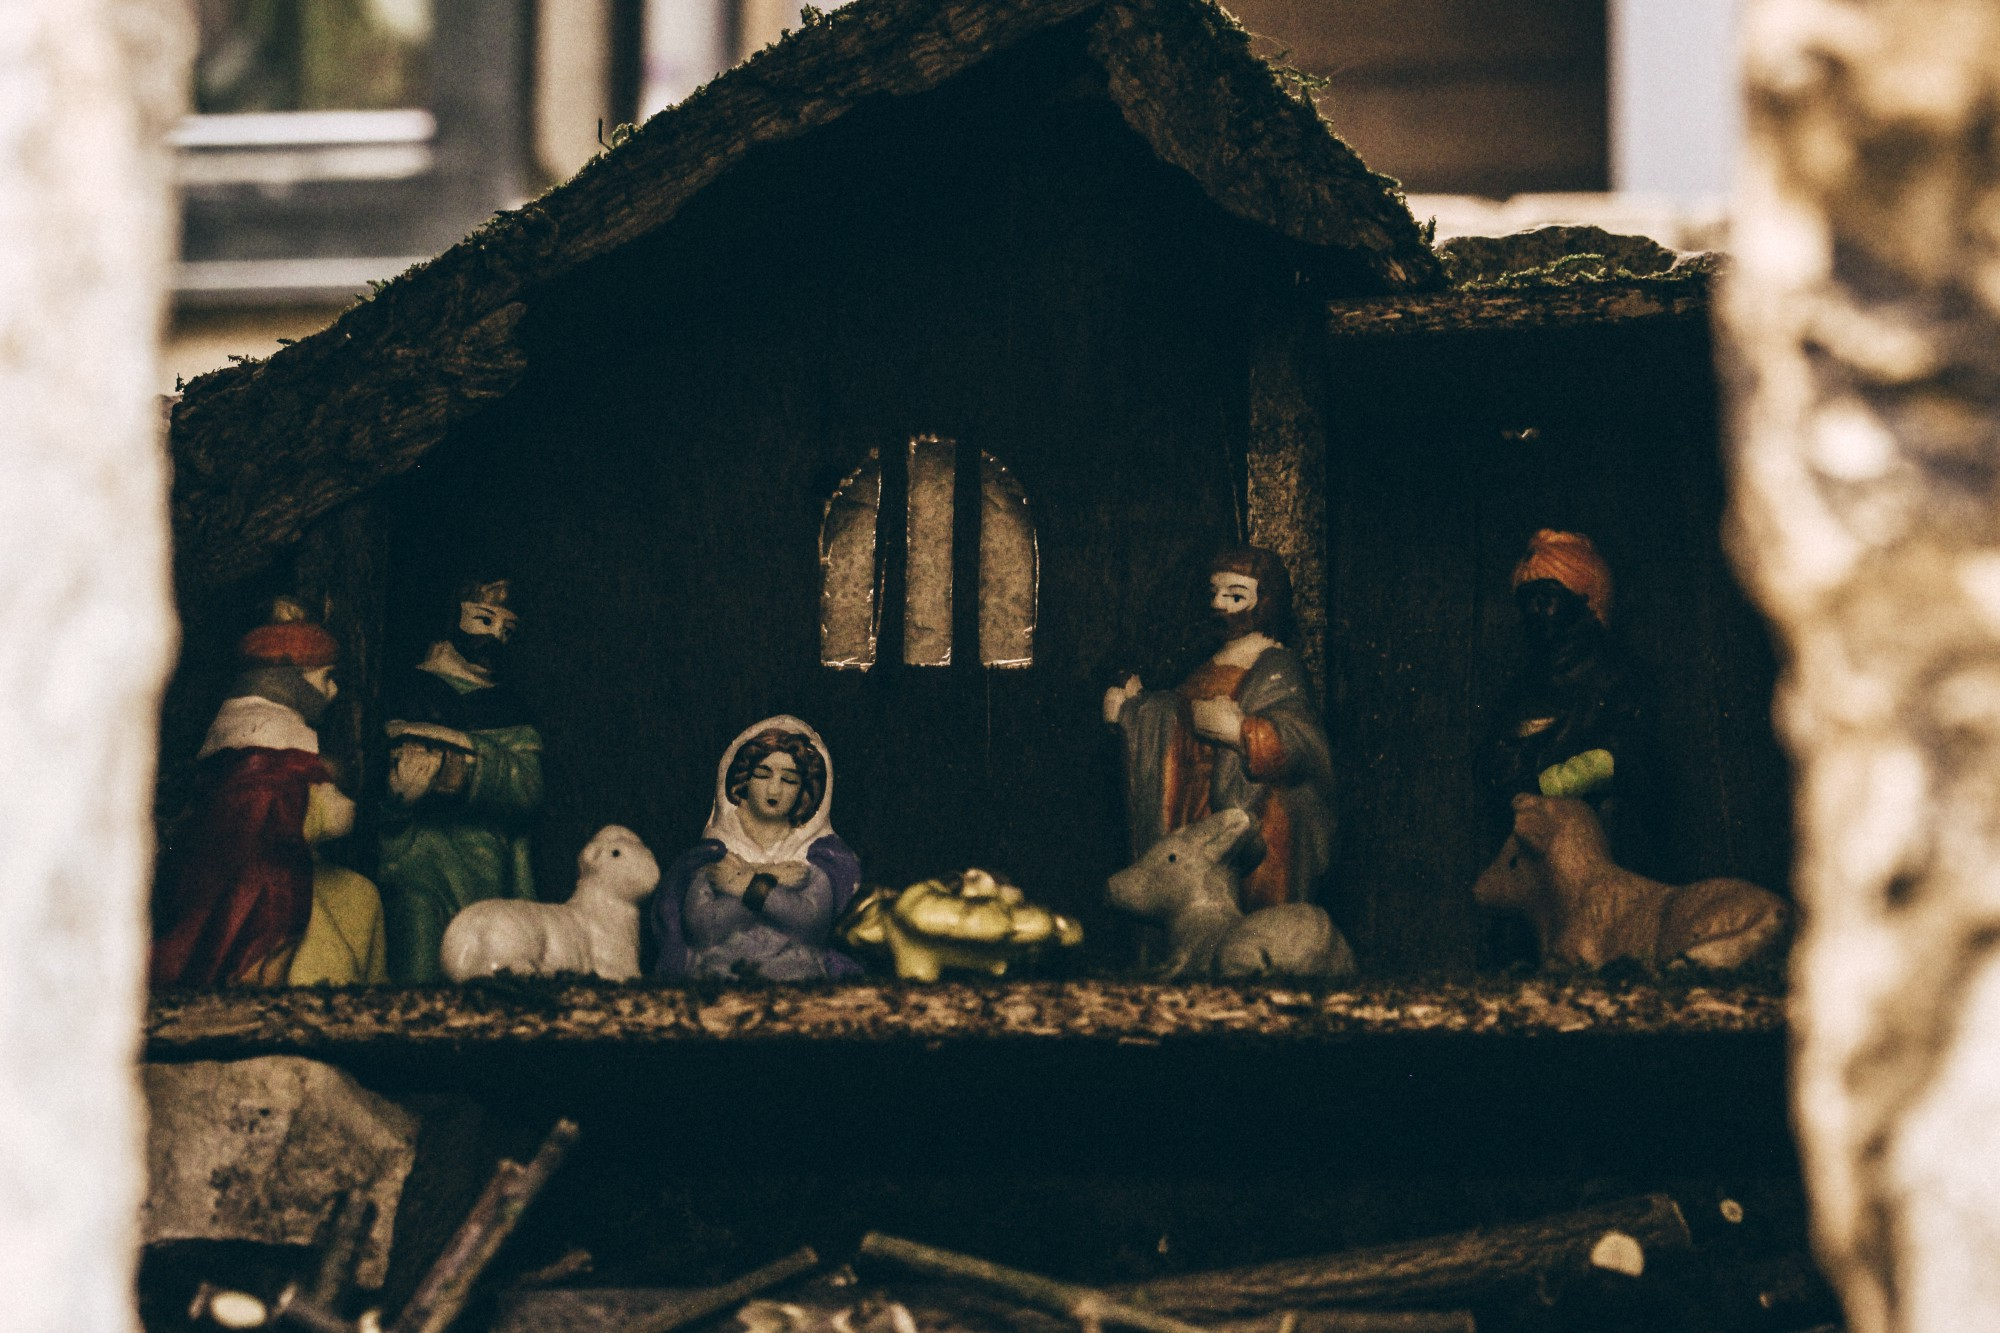 A Nativity set with baby Jesus in the center of the scene, surrounded by Mary, Joseph, animals, and magi.